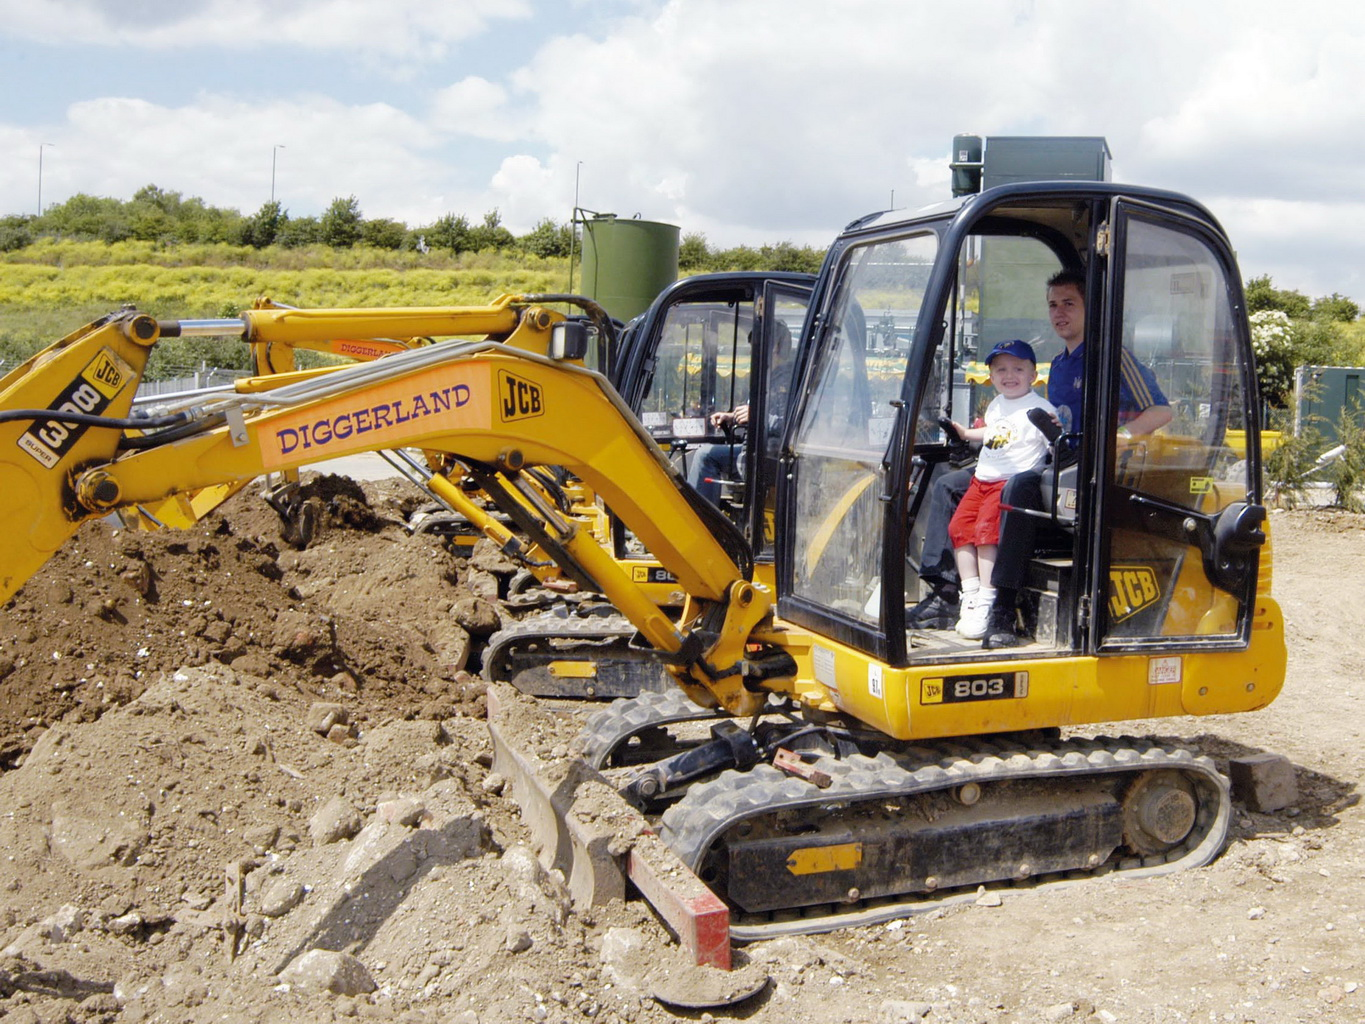 Diggerland Usa A Construction Themed Adventure Park Is Coming To Nj Jersey Shore Vacations